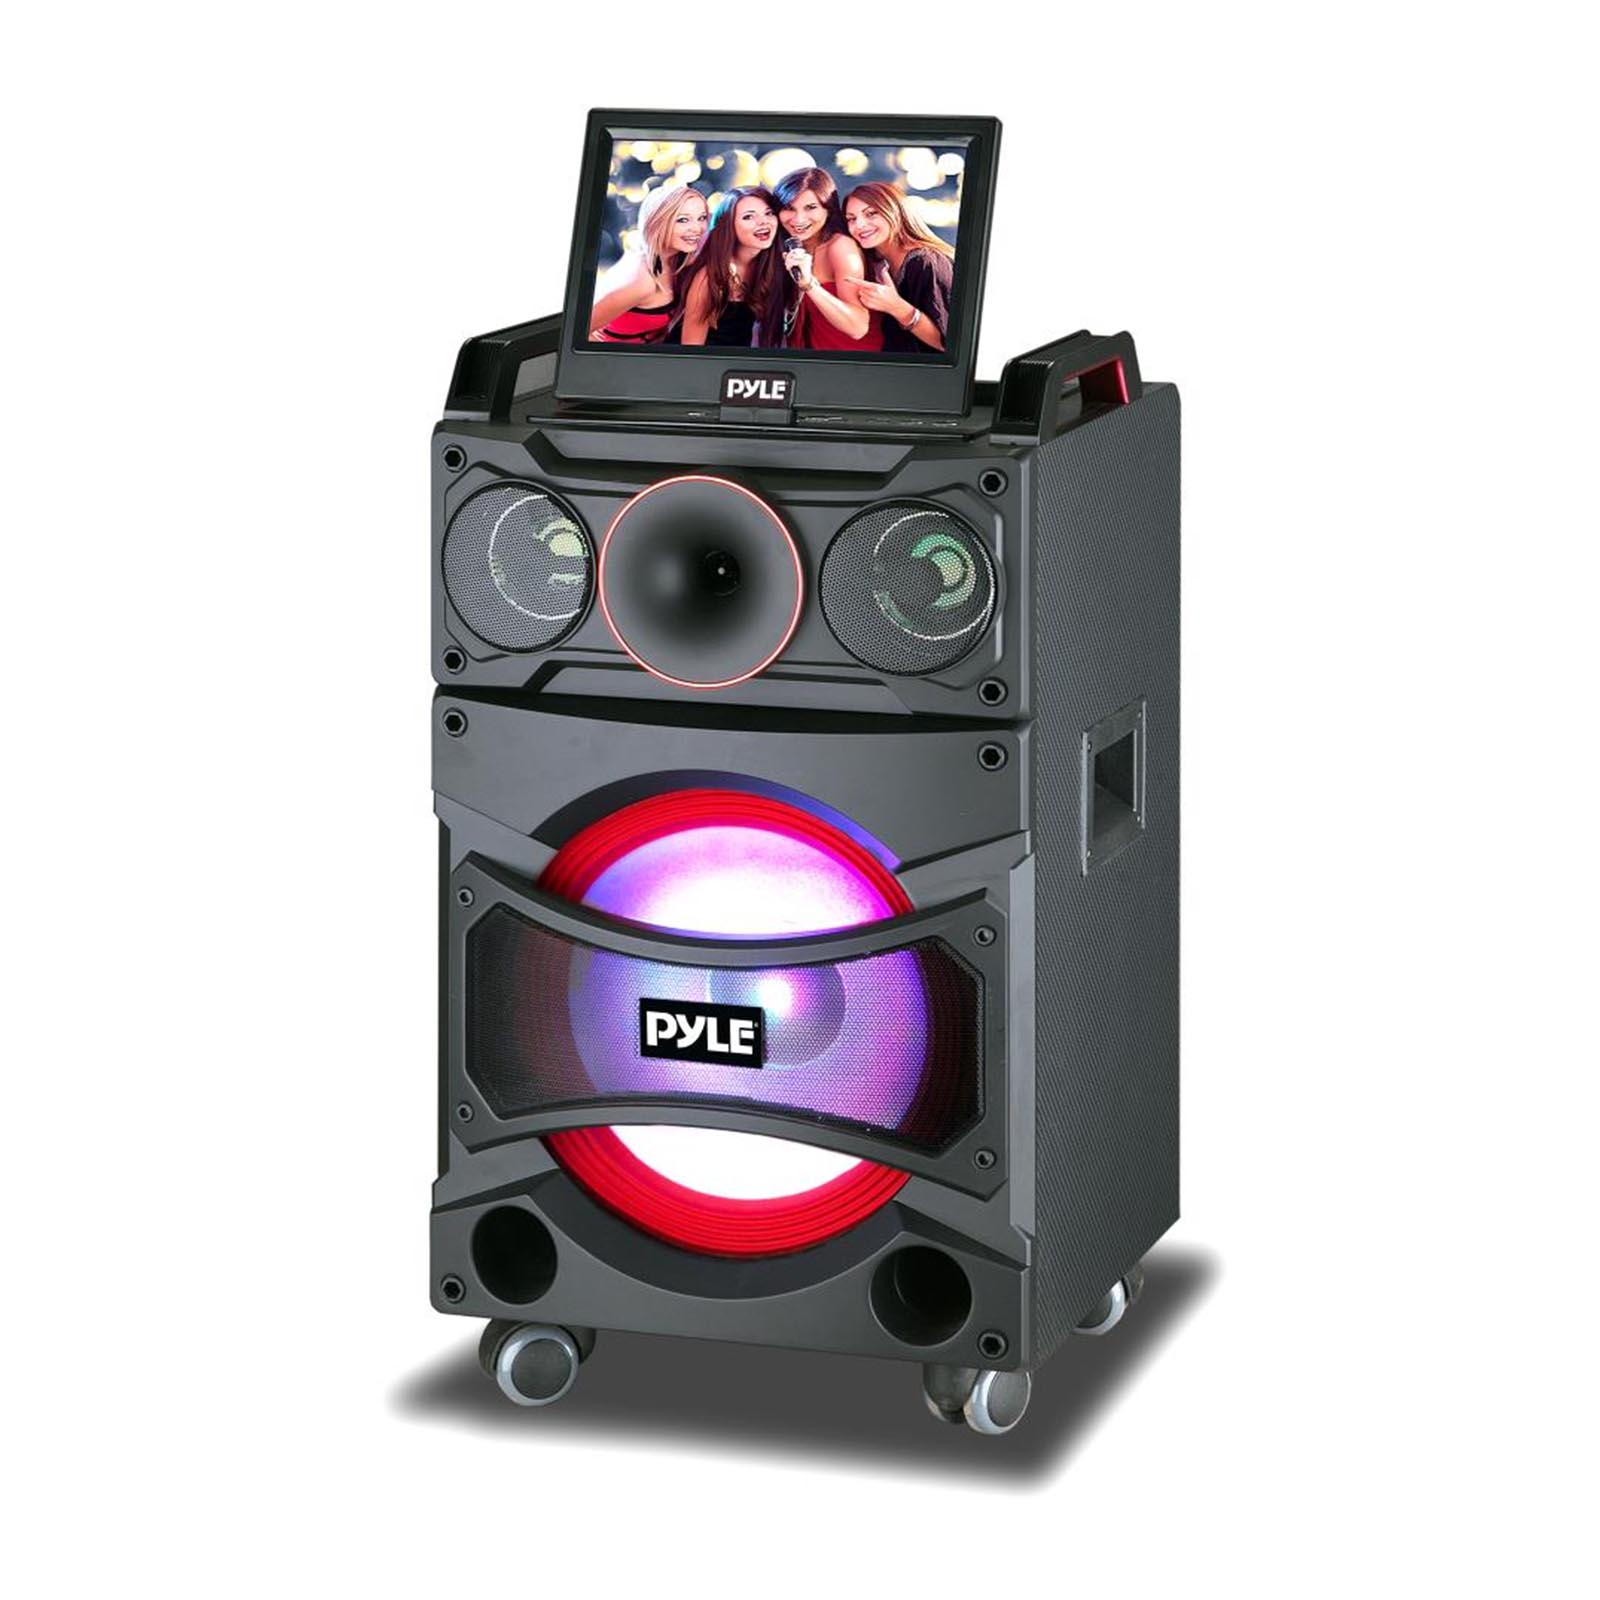 "Pyle Karaoke Vibe Portable Video PA Speaker System with Built-in Multimedia Disc Player, 10"" Fold-Out Display Screen (12"" Speaker, 800 Watt)"